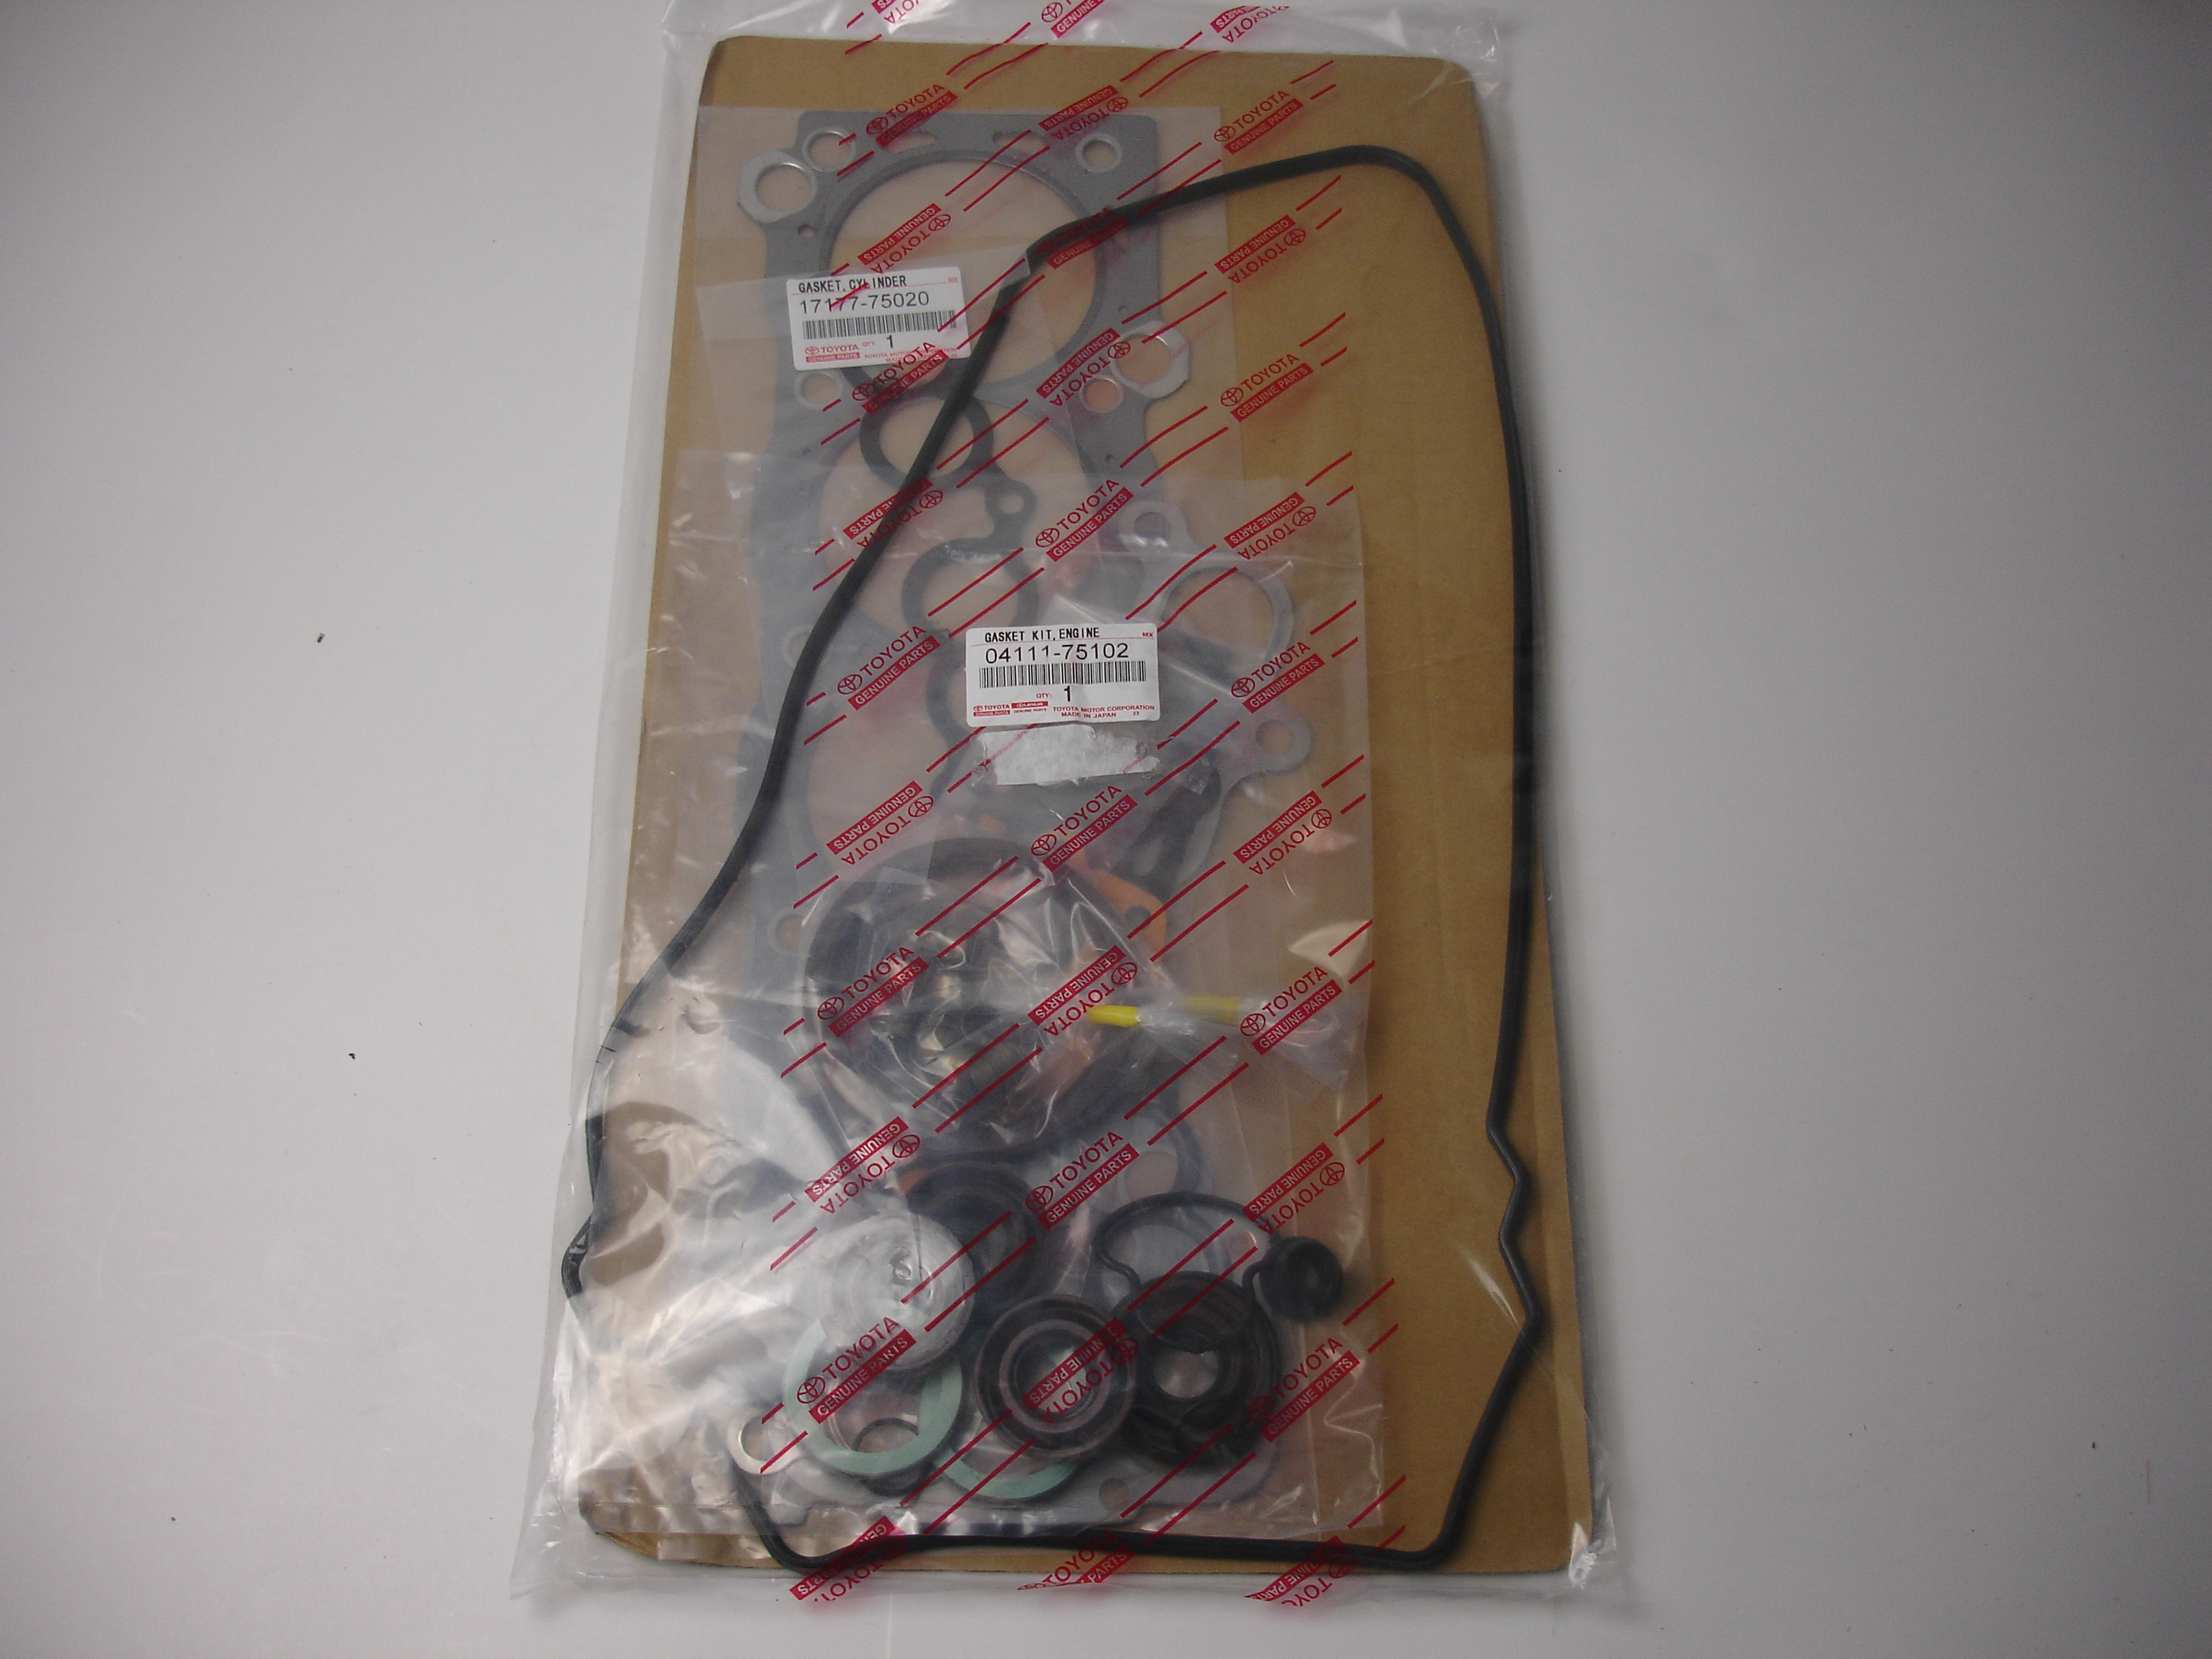 Up for sale is a Toyota OEM engine overhaul gasket kit for a 3RZ-FE 2.7L. OEM part number 04111-75102